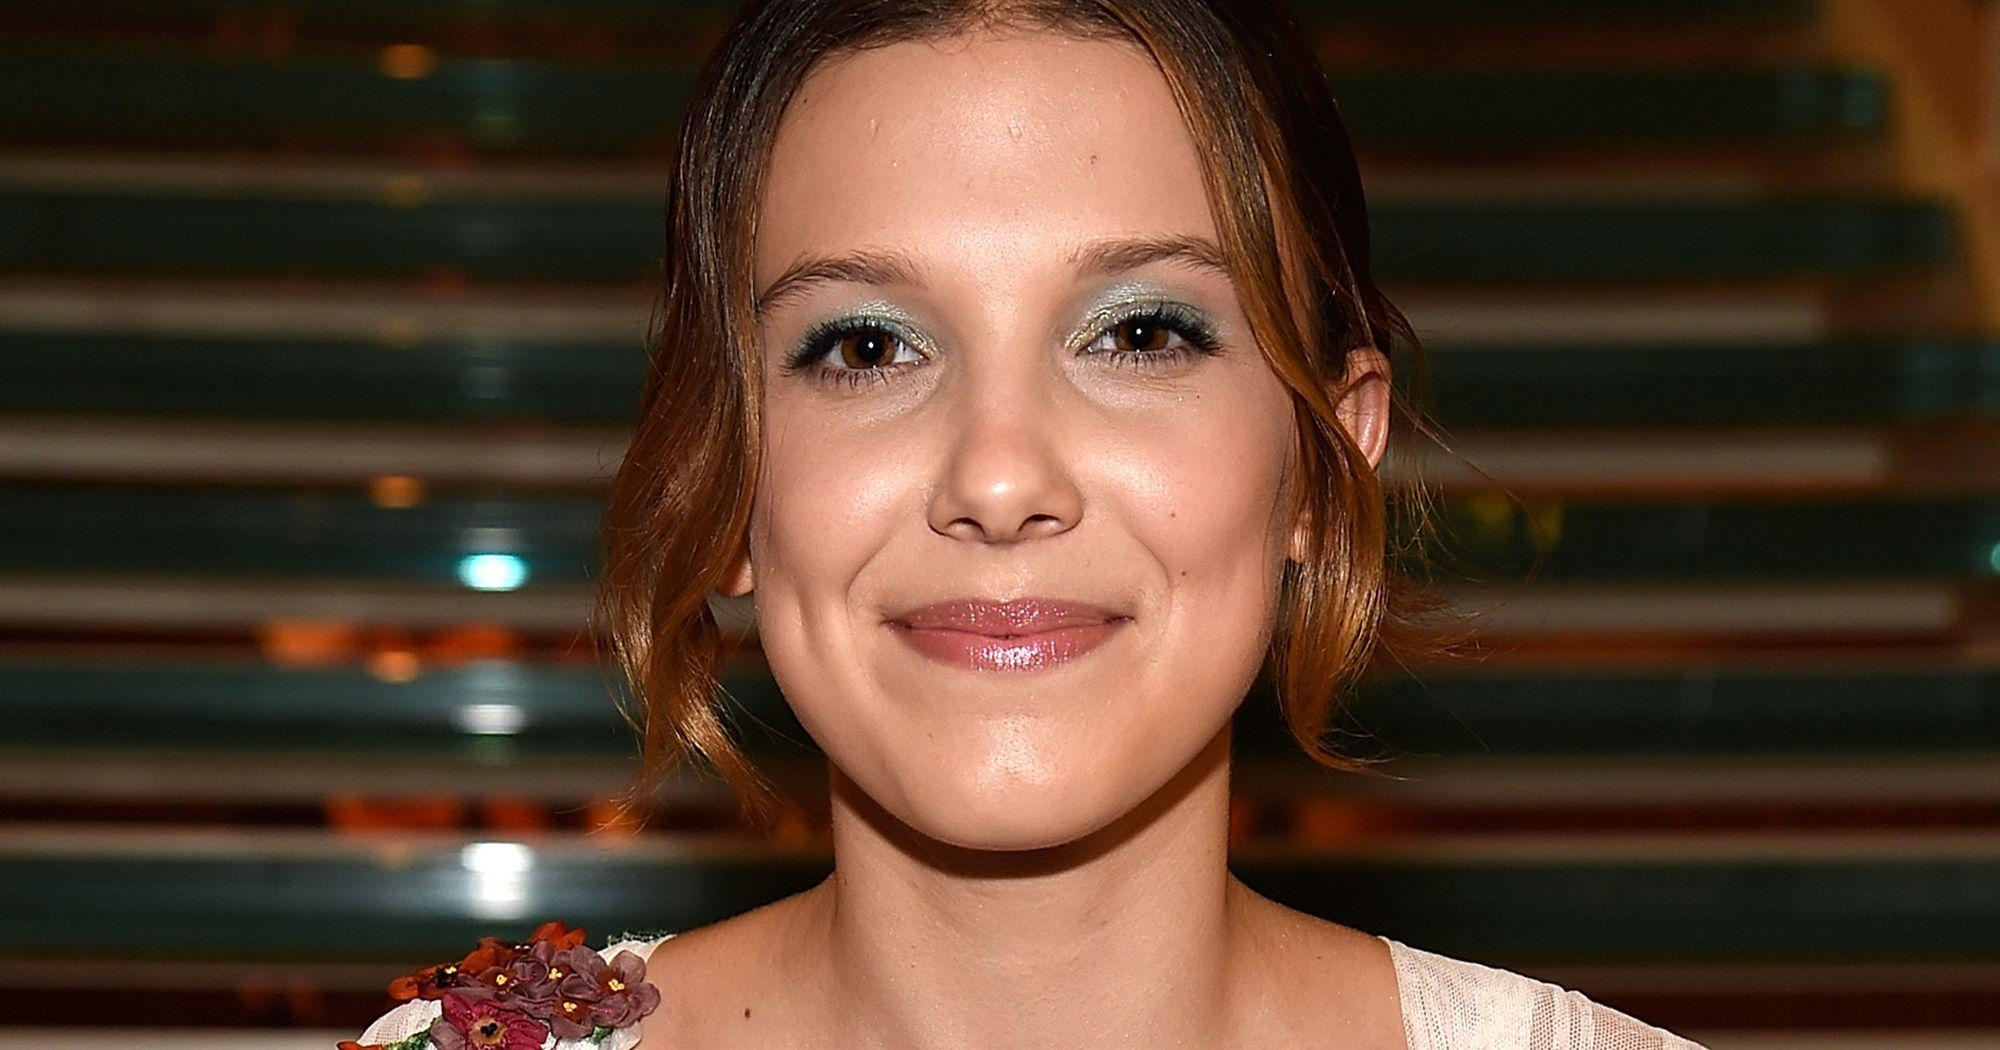 Millie Bobby Brown Has Blonde Hair At Godzilla Premiere